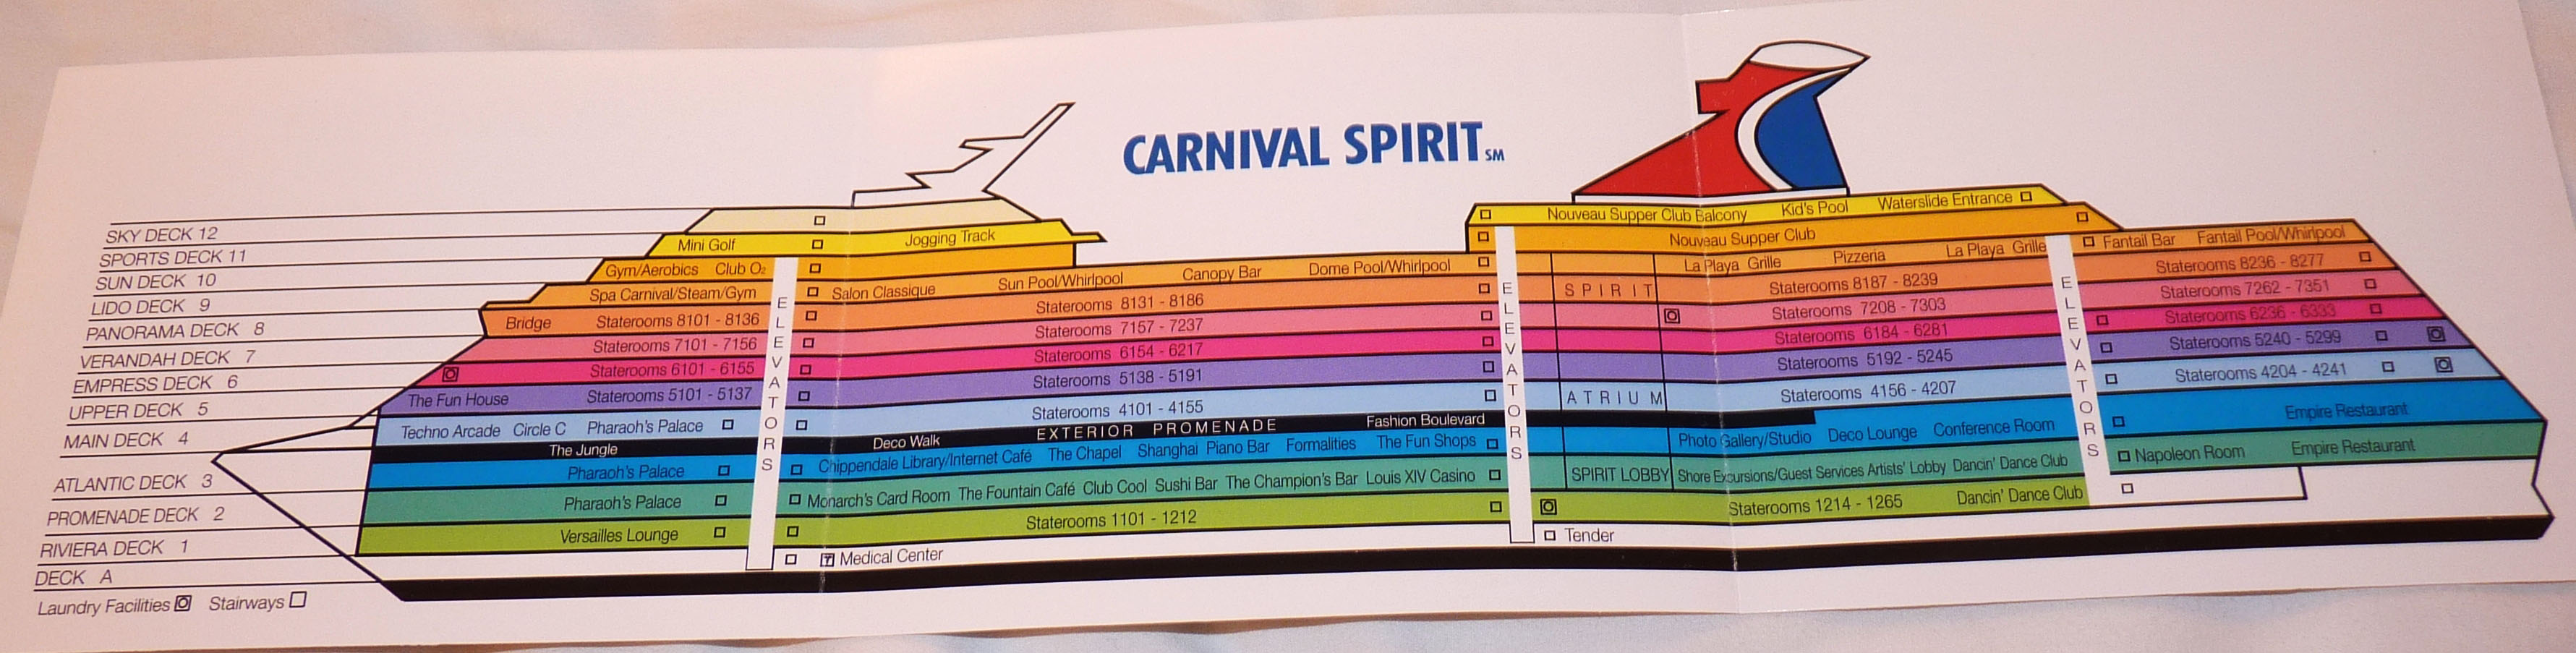 Carnival cruise ship glory deck plans looks punchaos modest 17 carnival cruise ship glory deck plans 2018 baanklon Choice Image